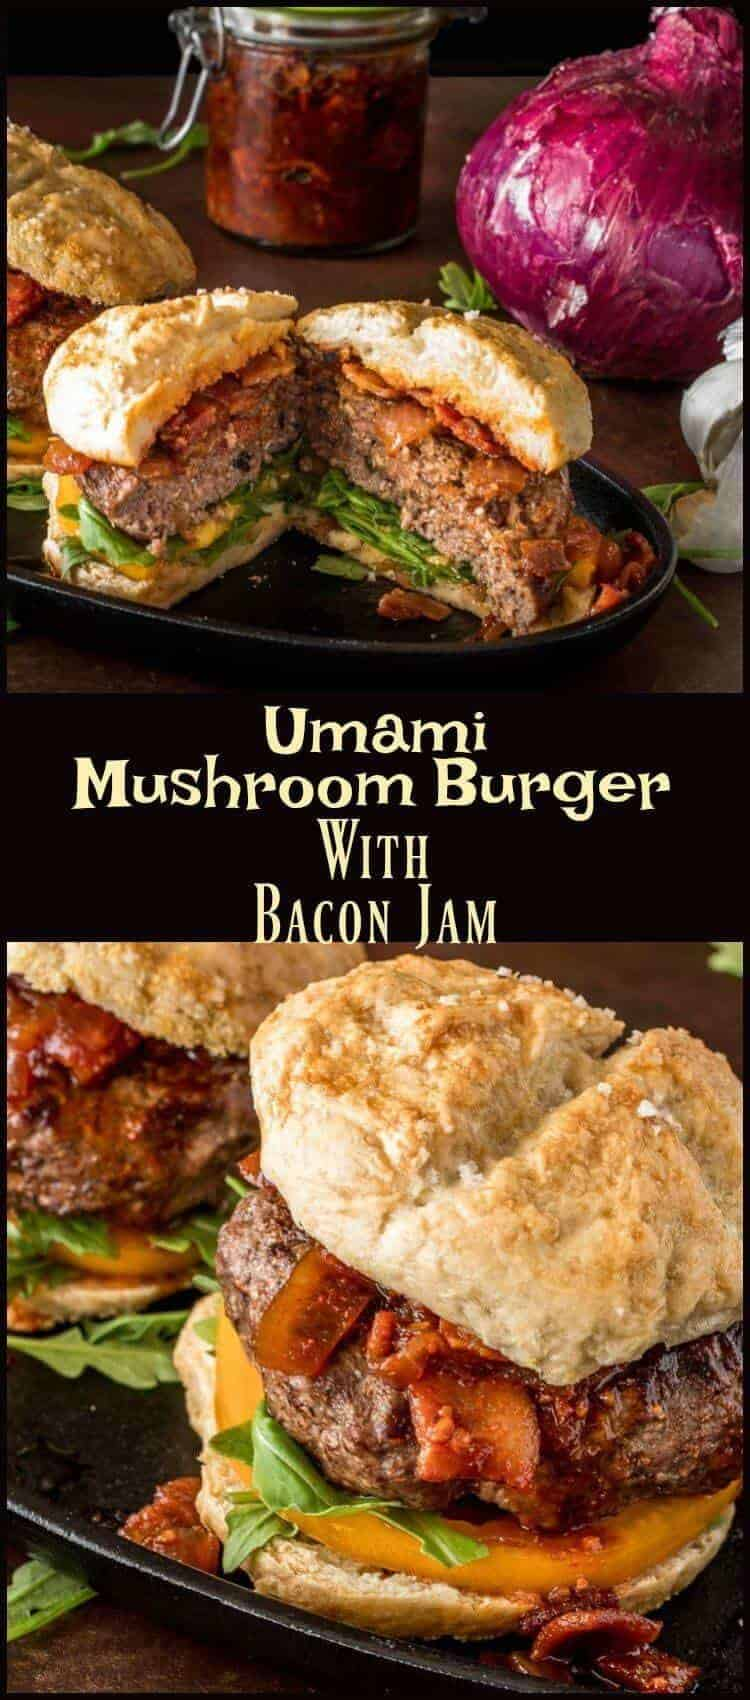 Umami Mushroom Burgers with Bacon Jam pinterest - Umami Mushroom Burger with Bacon Jam certainly is! This lean umami-rich burger patty pairs perfectly with the slightly sweet, smoky, tangy flavor of the bacon jam. Make a big batch, and use the leftovers on another batch of burgers, on breakfast biscuits, or just eat it with a spoon! burgers | mushroom burgers | blended burger project | bacon jam